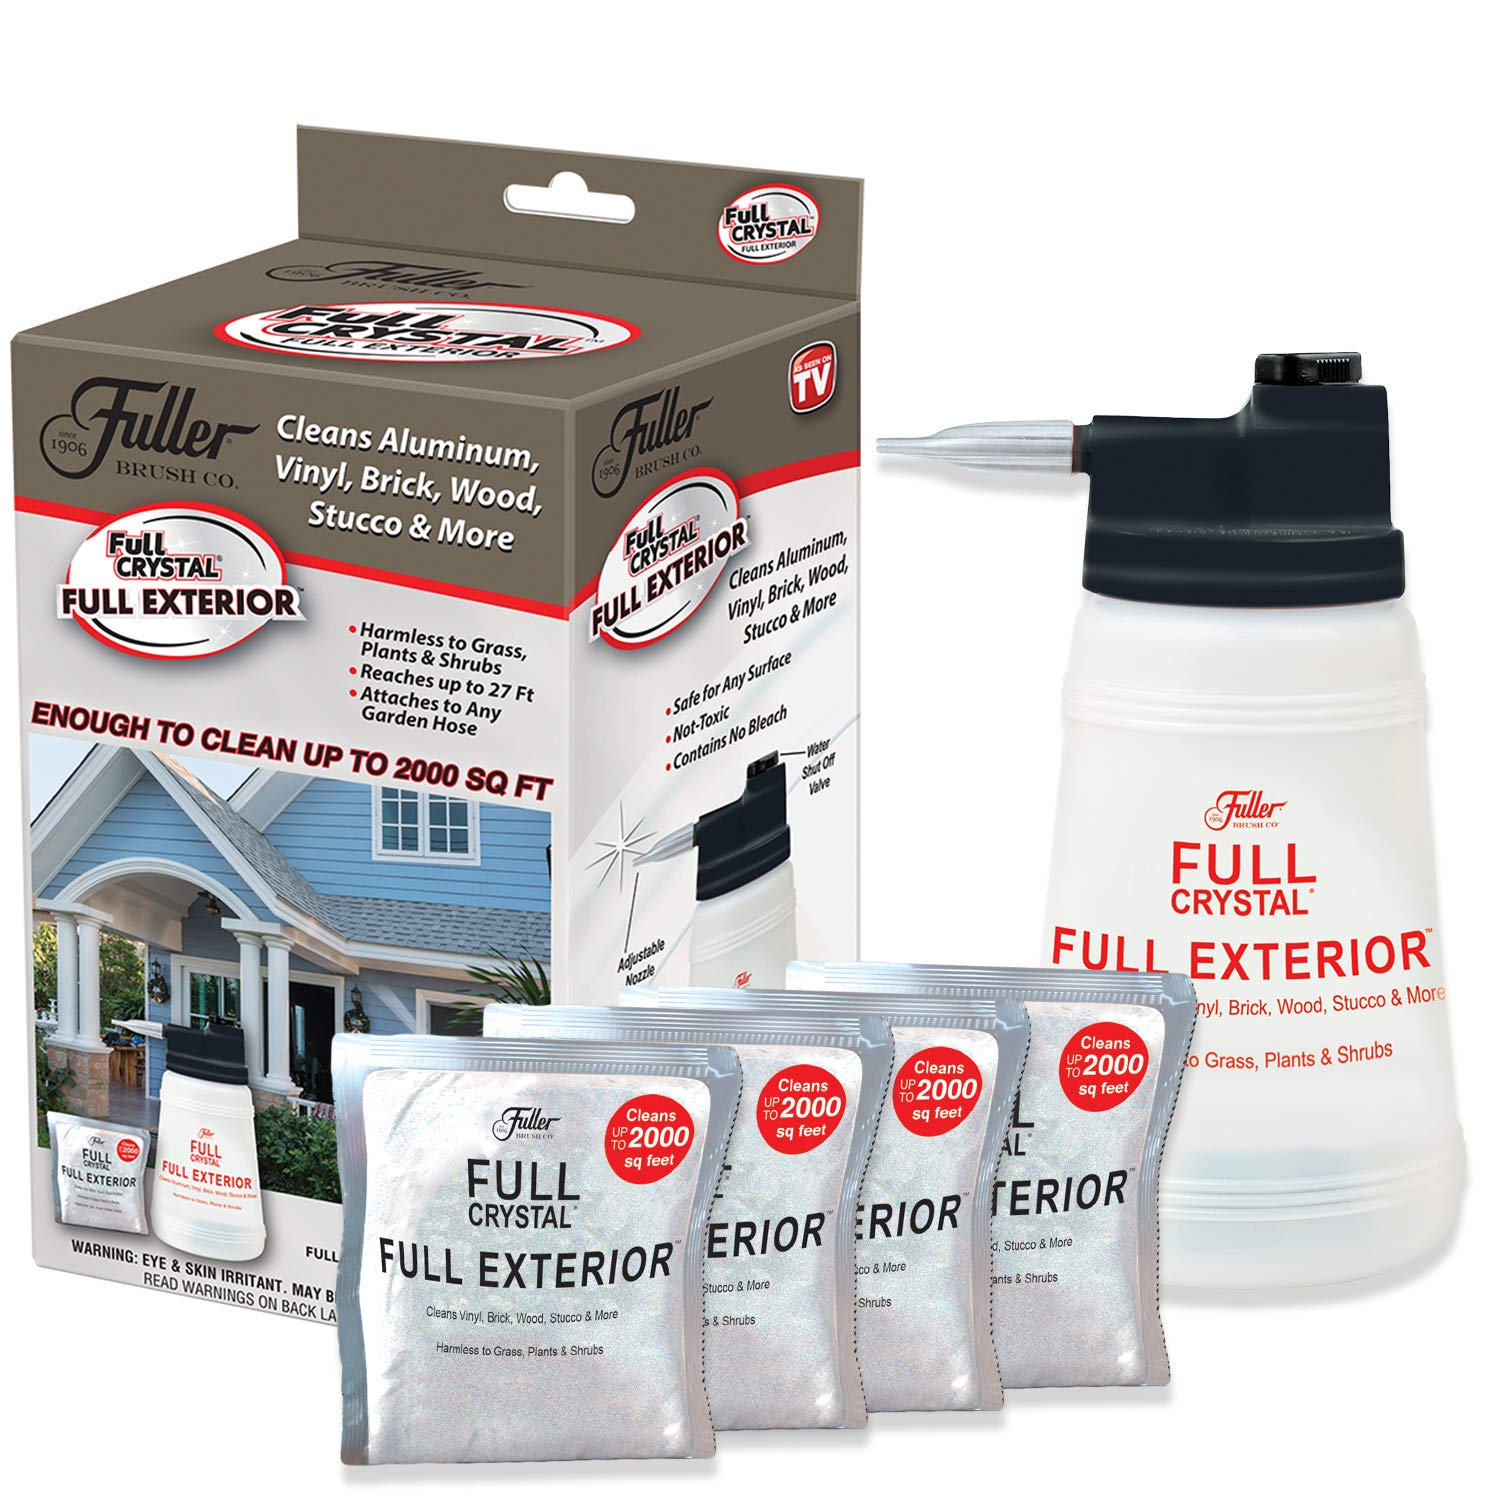 Full Exterior Kit - Bottle, Lid with Hose Attachment and 1 lb. Crystal Powder Outdoor Cleaner (Cleans Up to 8,000 Sq. Ft): Non-Toxic, No Scrub, No Rinse Cleaning Kit by Full Crystal (Image #1)